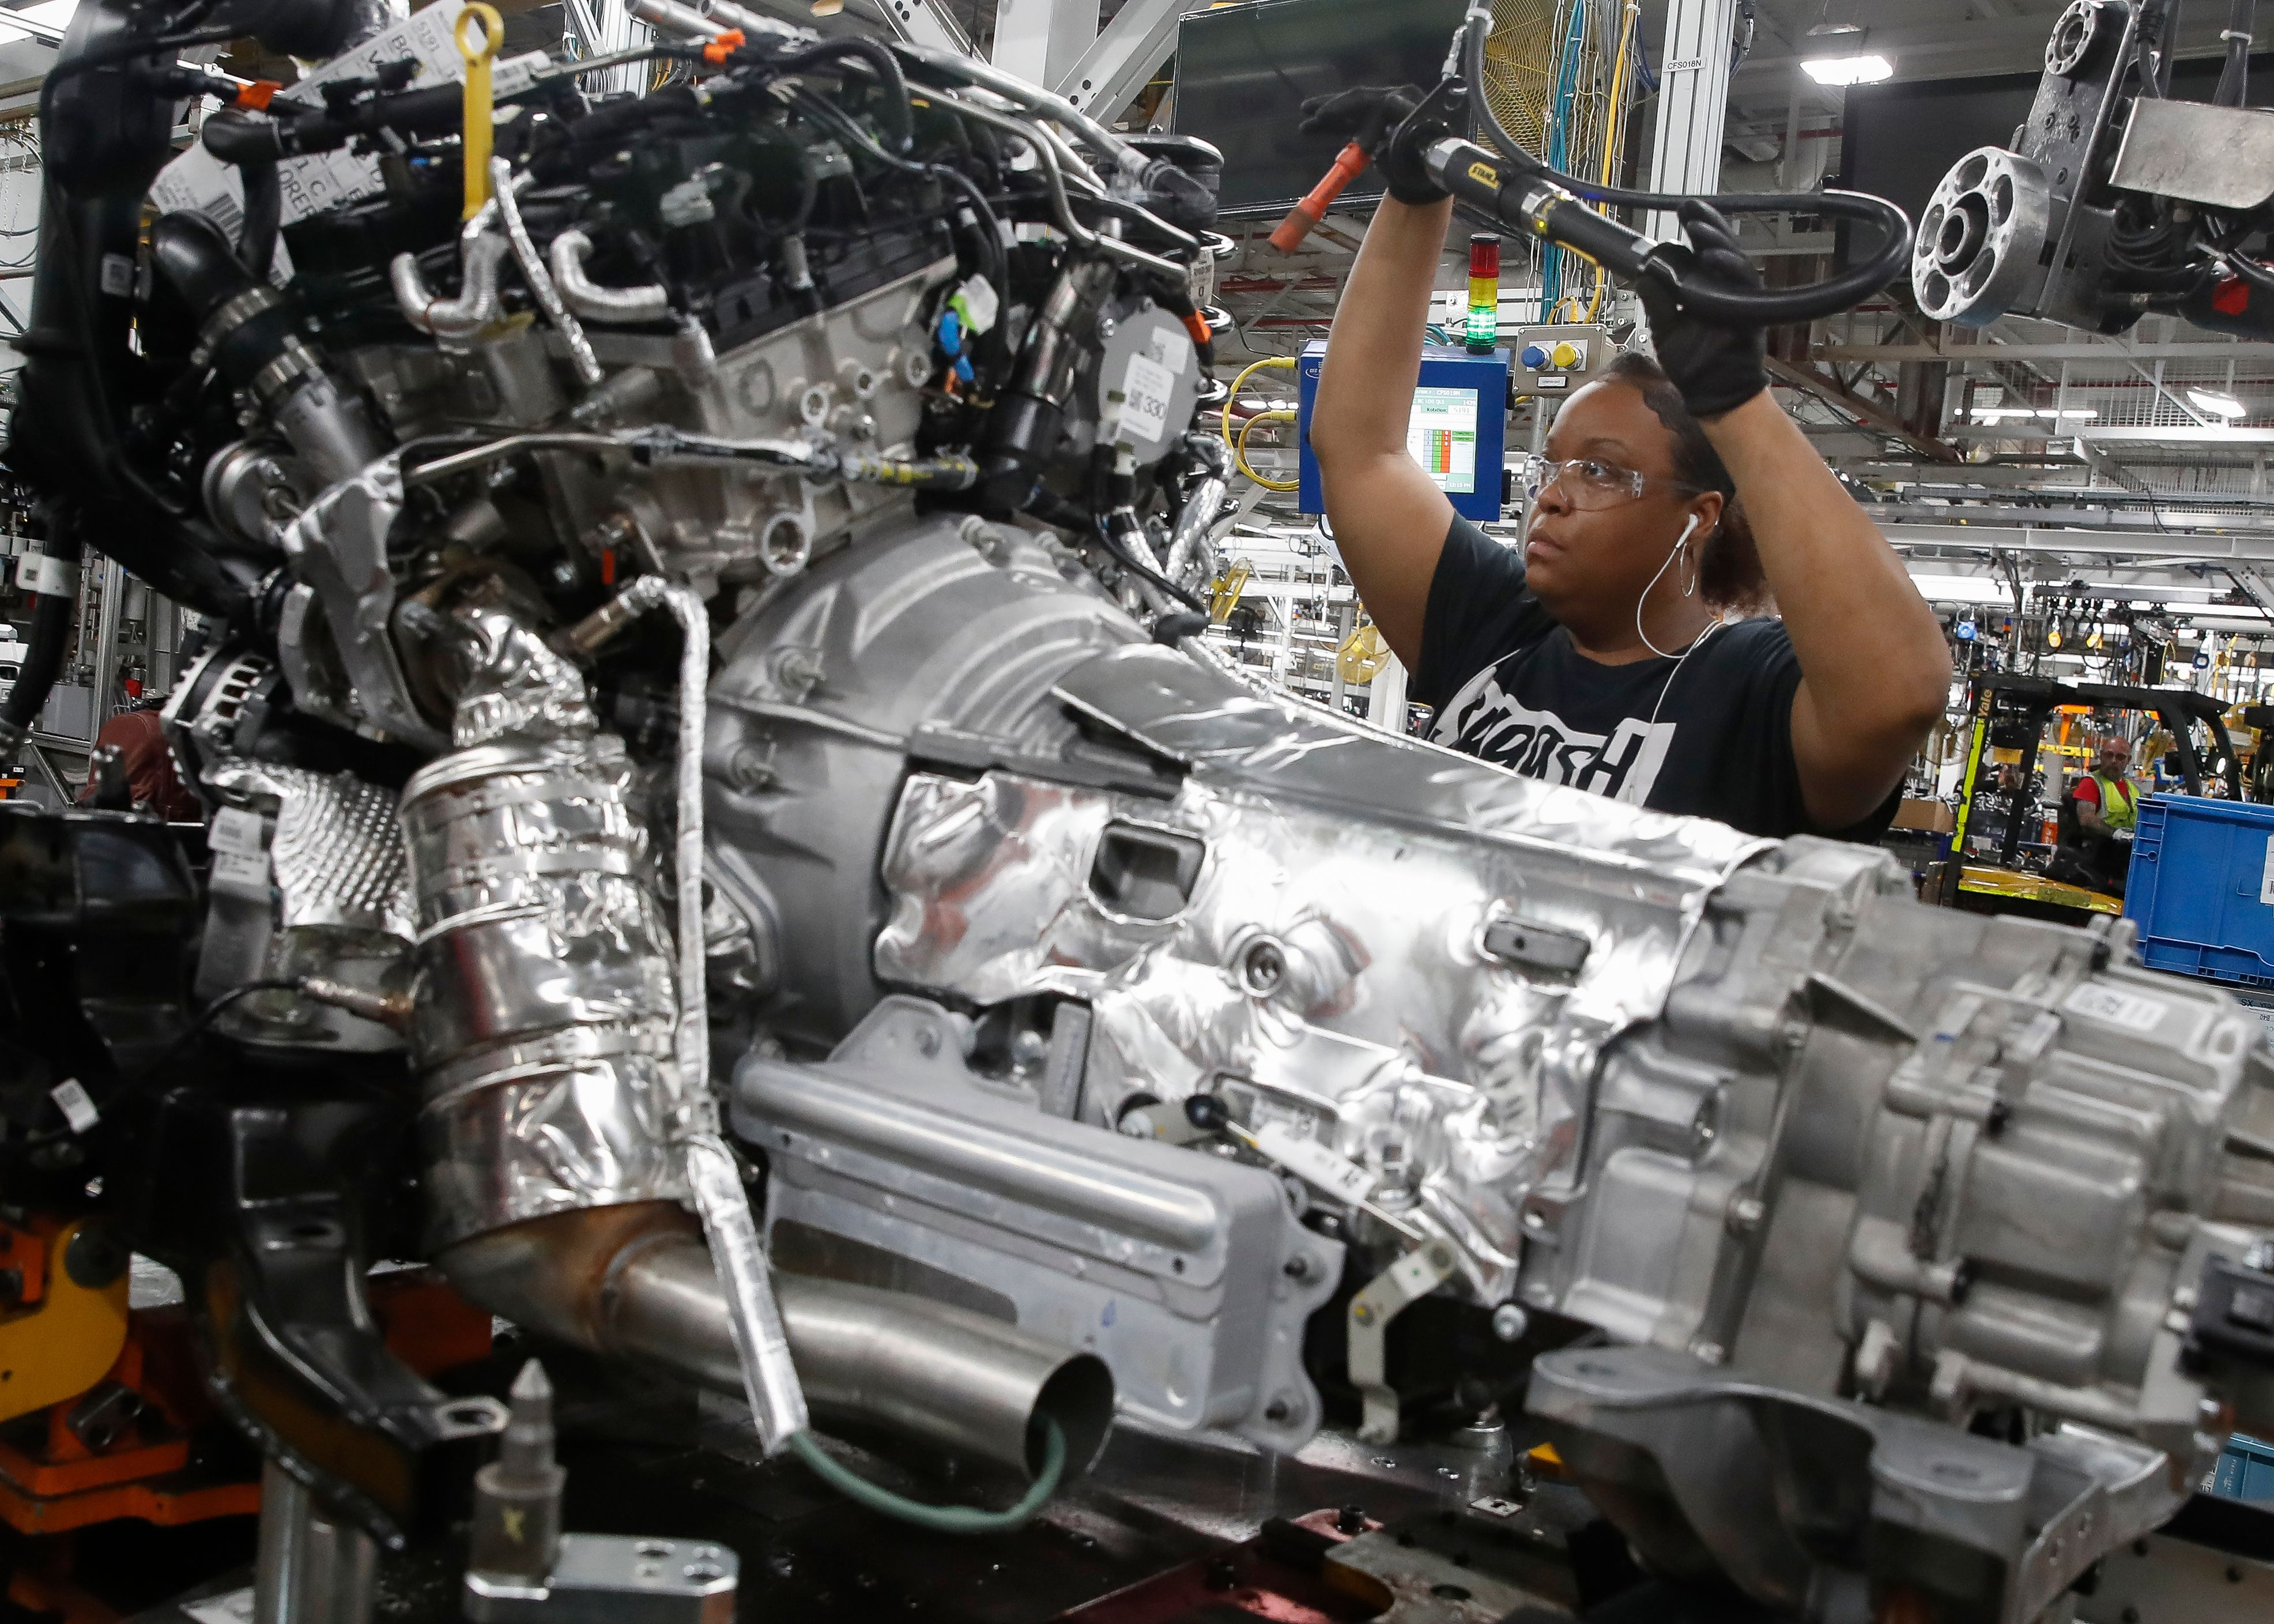 U.S. services and manufacturing sink in February - Axios